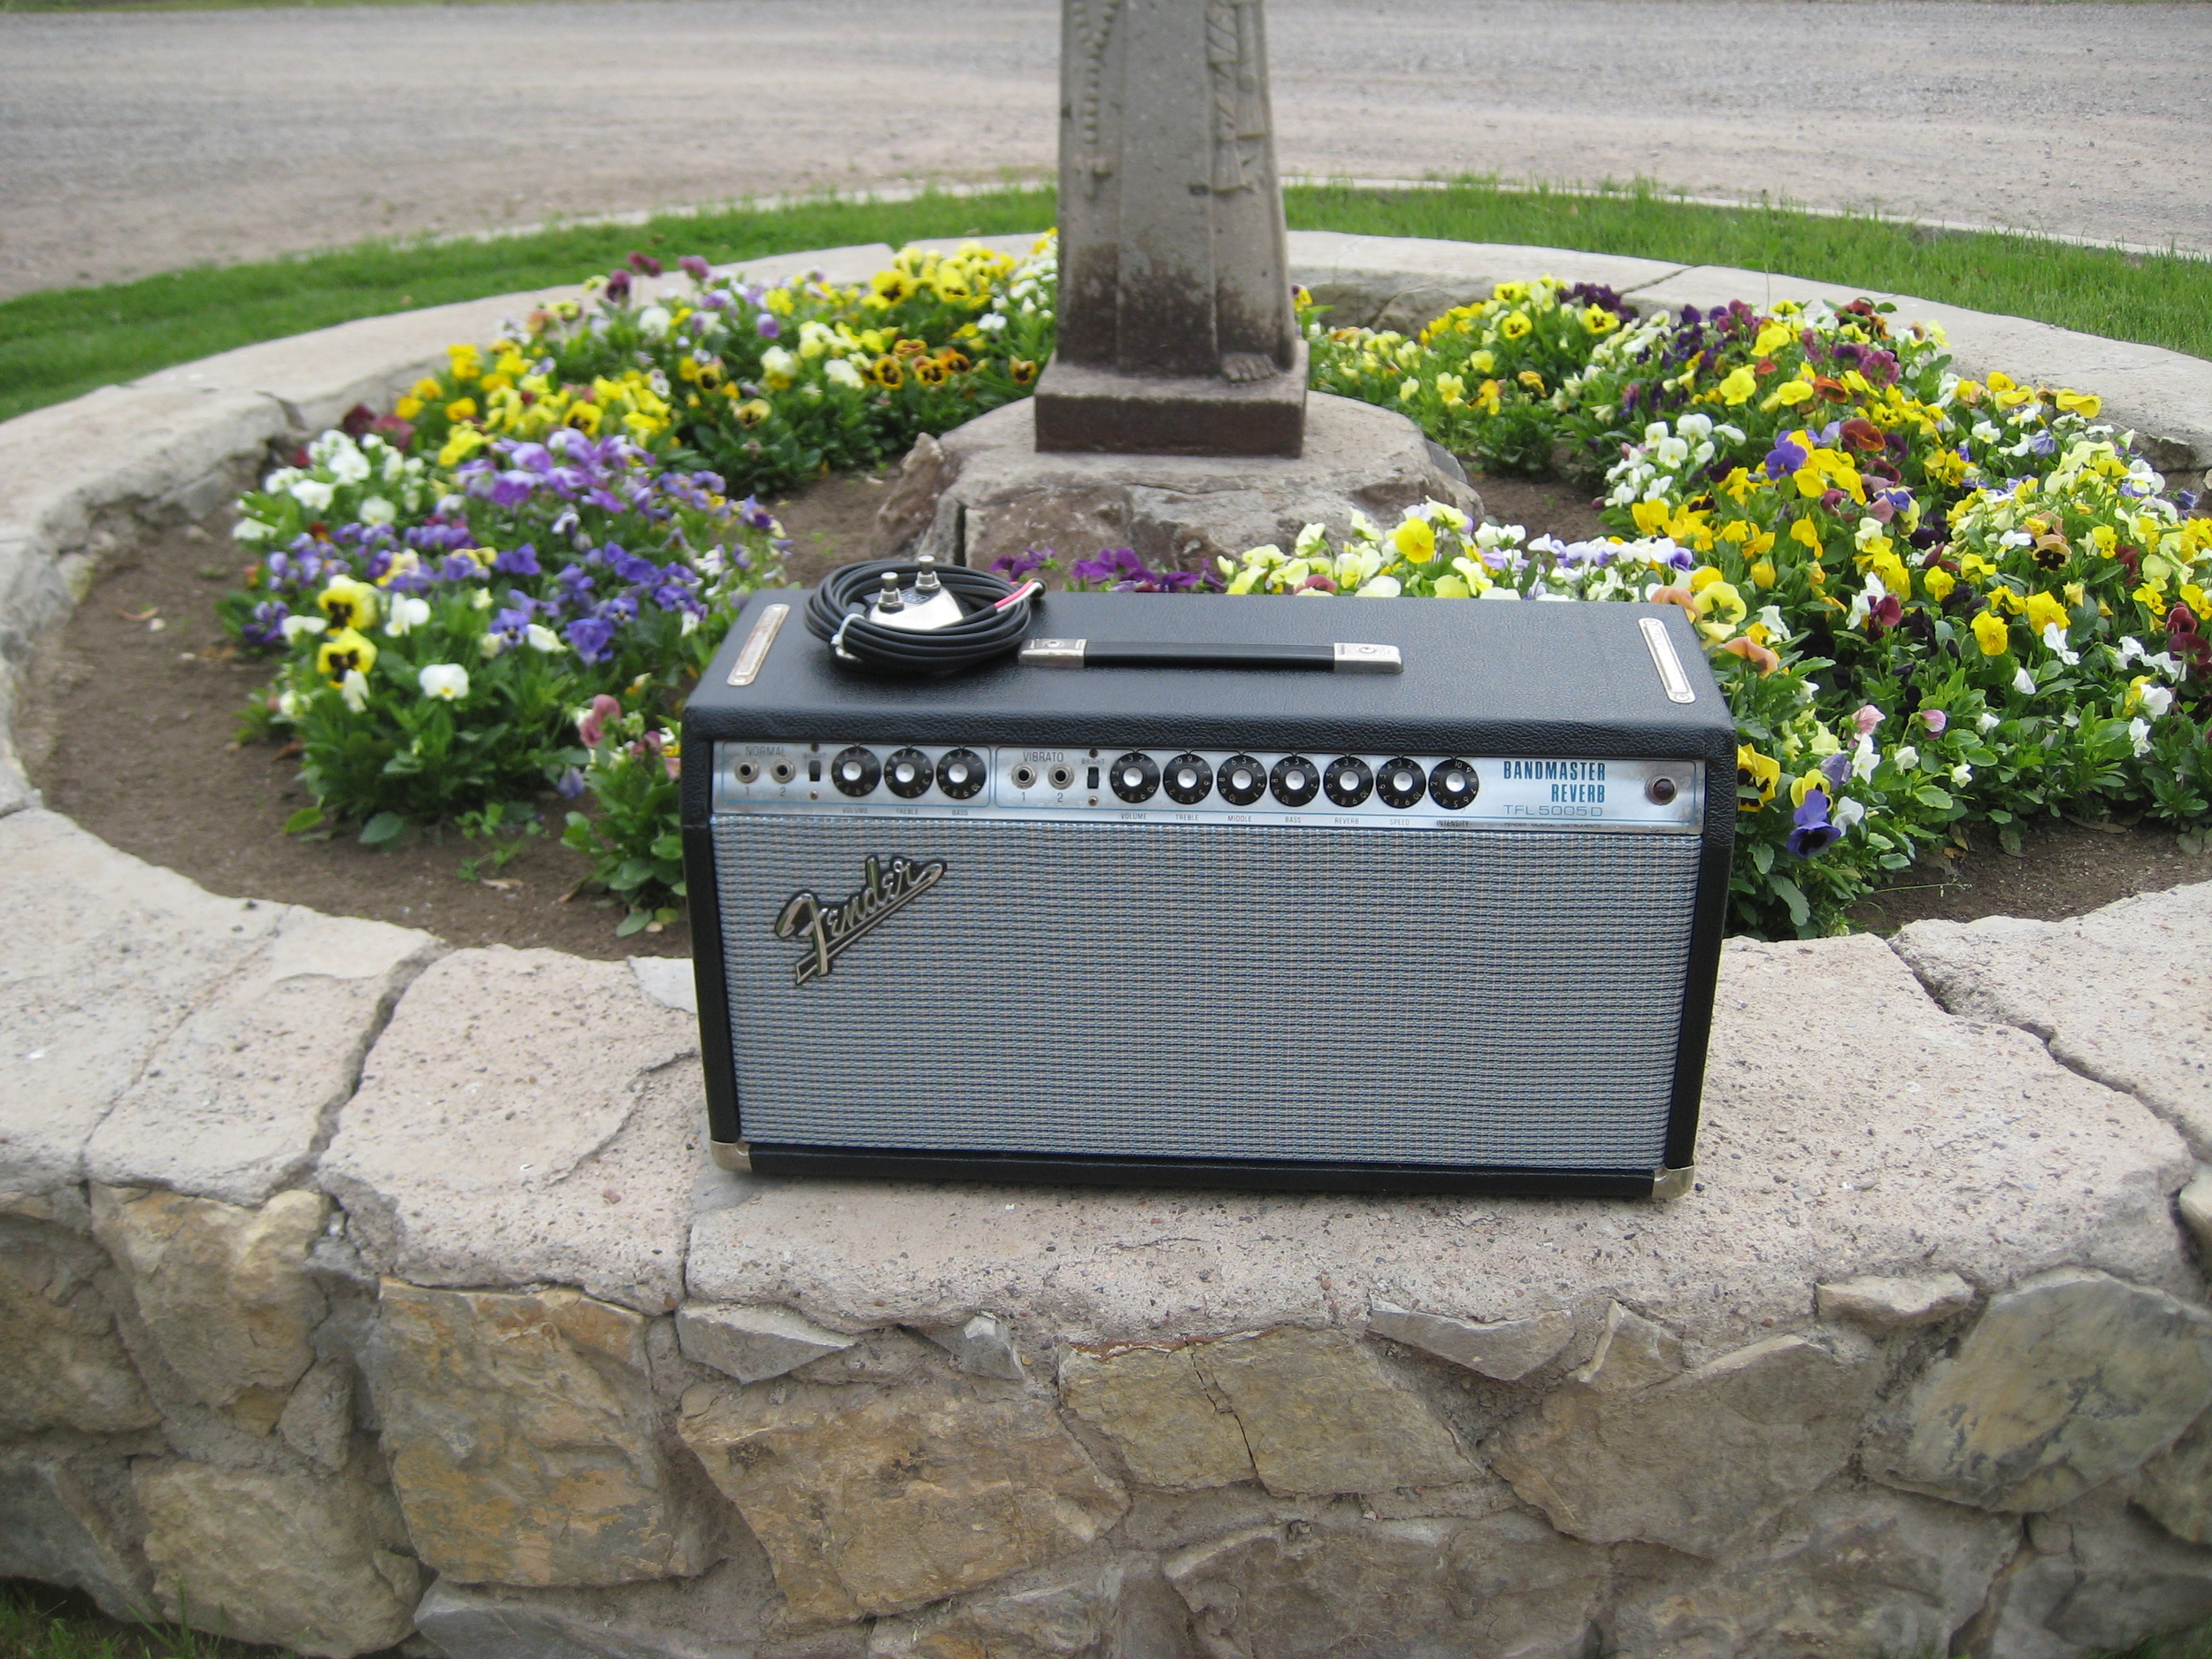 This Bandmaster Reverb belonged to a customer's grandfather. It was in really rough shape with the cab falling apart. It took lots of TLC to restore but it was well worth it. Great amp!